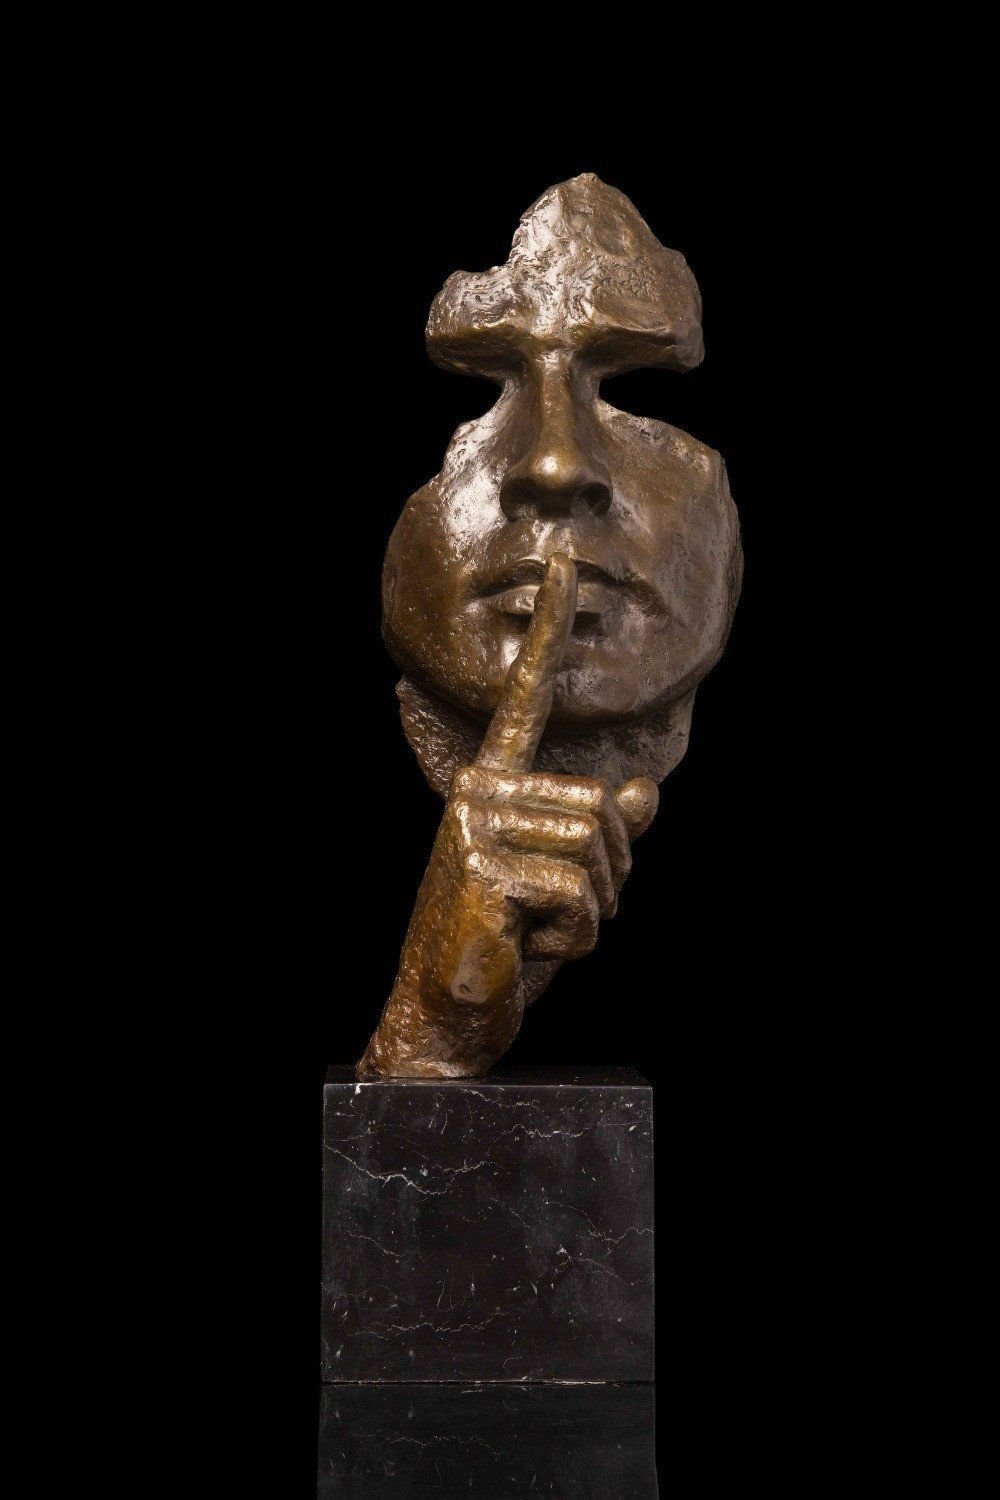 Antique bronze statue abstract face sculpture keep silence in